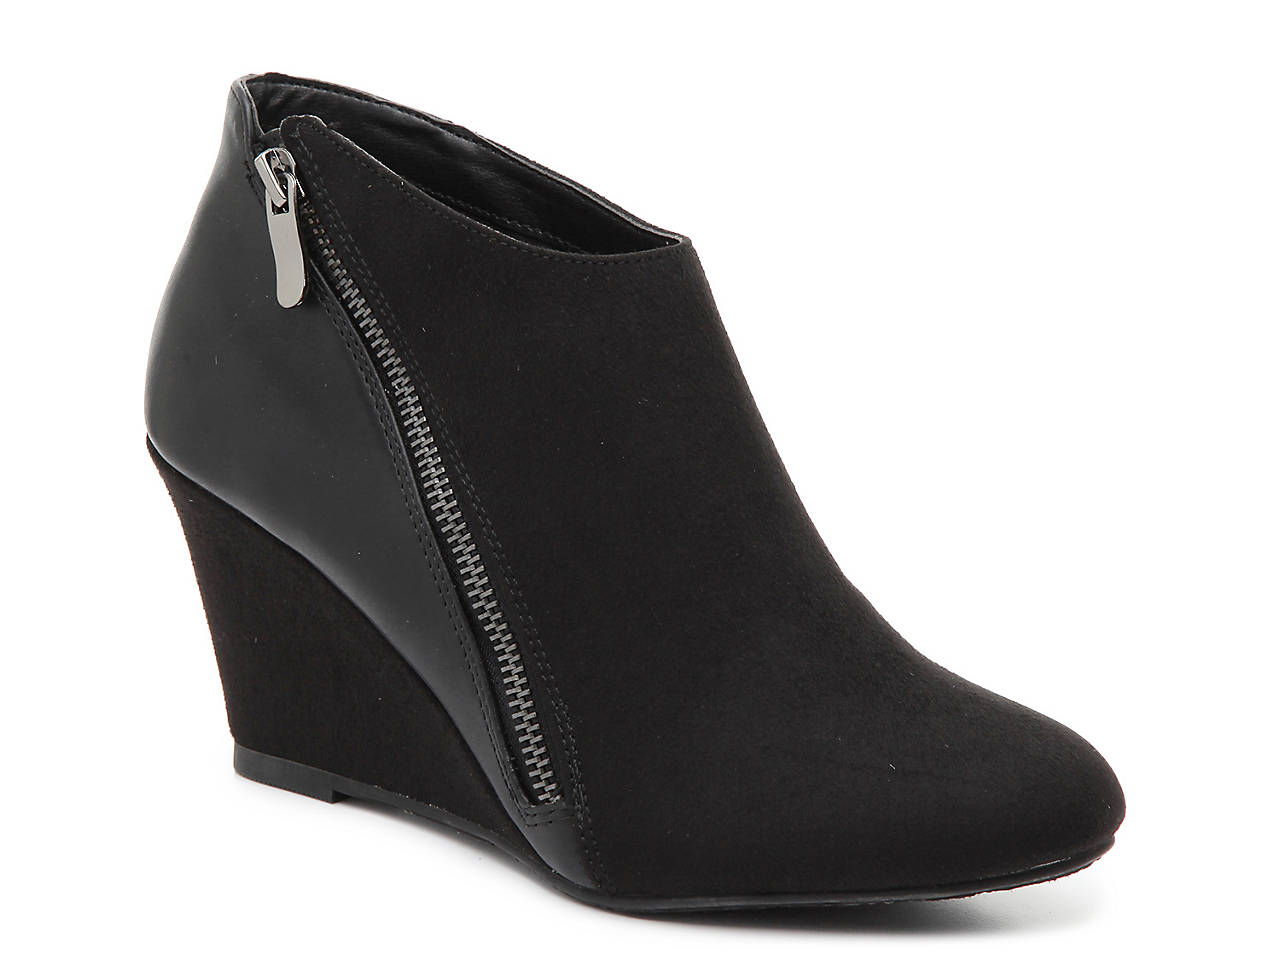 6f35db0642d CL by Laundry Viola Wedge Bootie Women s Shoes